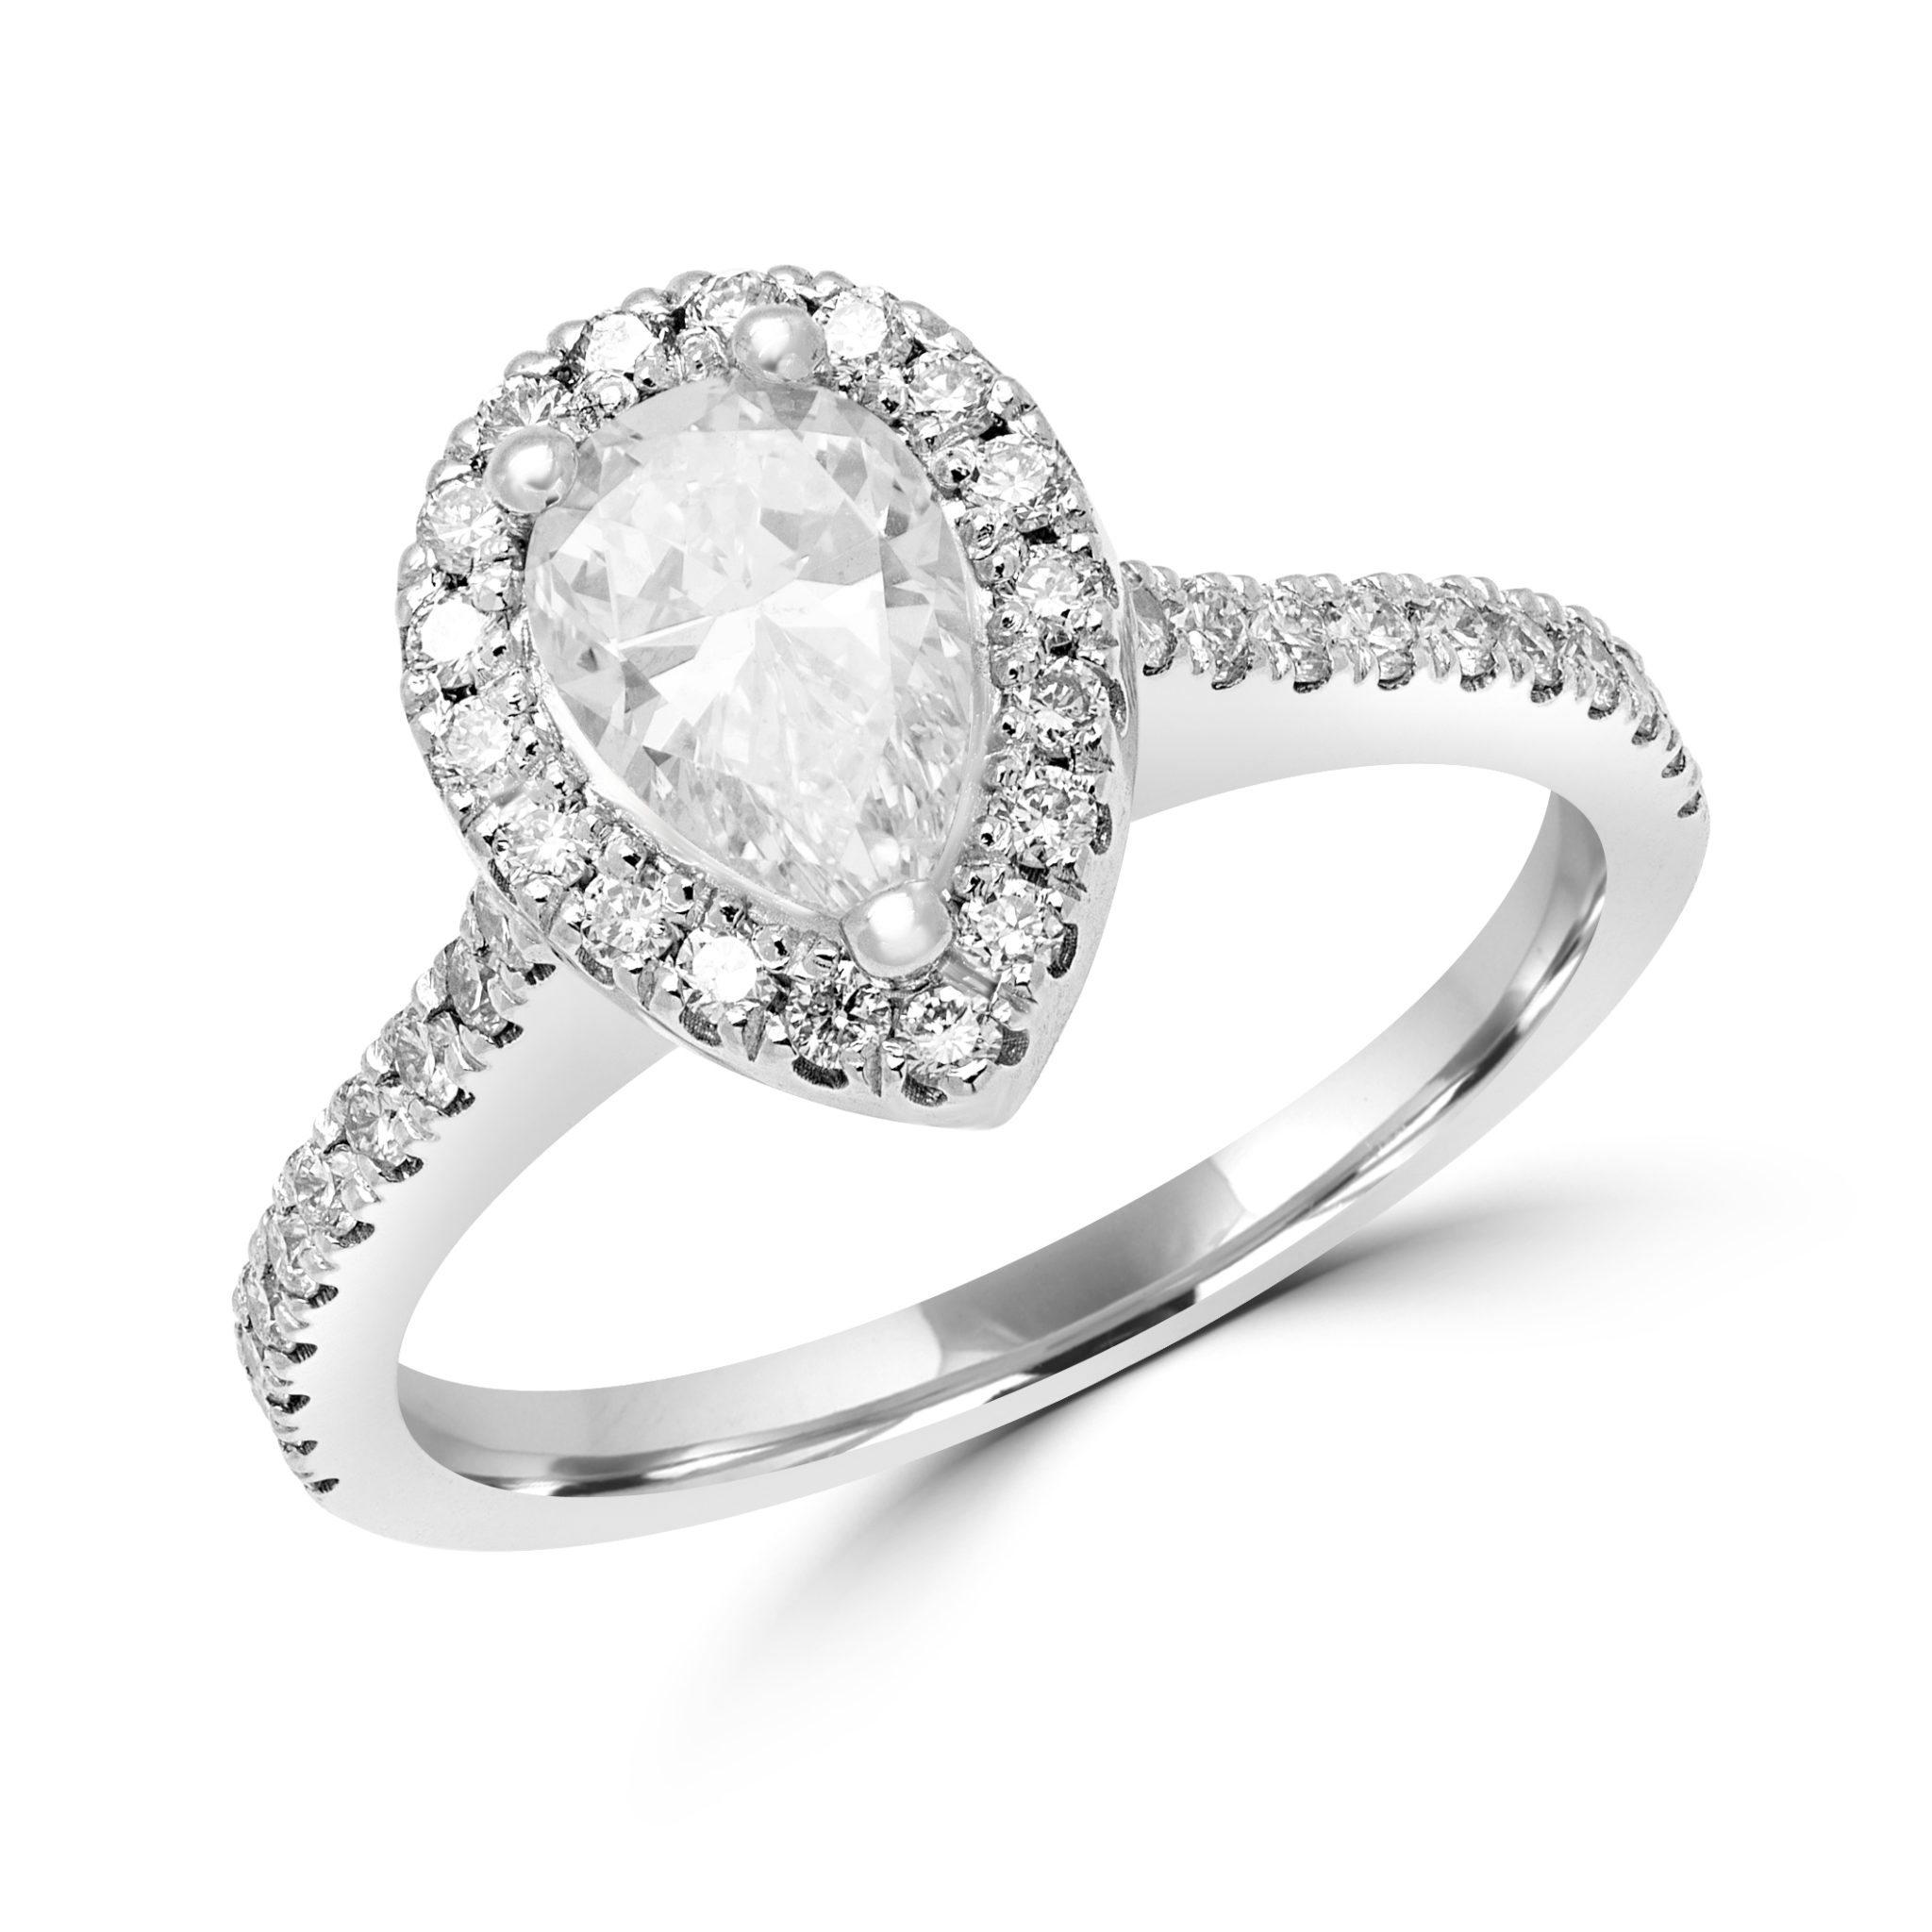 Pear Shape Halo Engagement Ring 1.08 (ctw)gia In 14k Gold